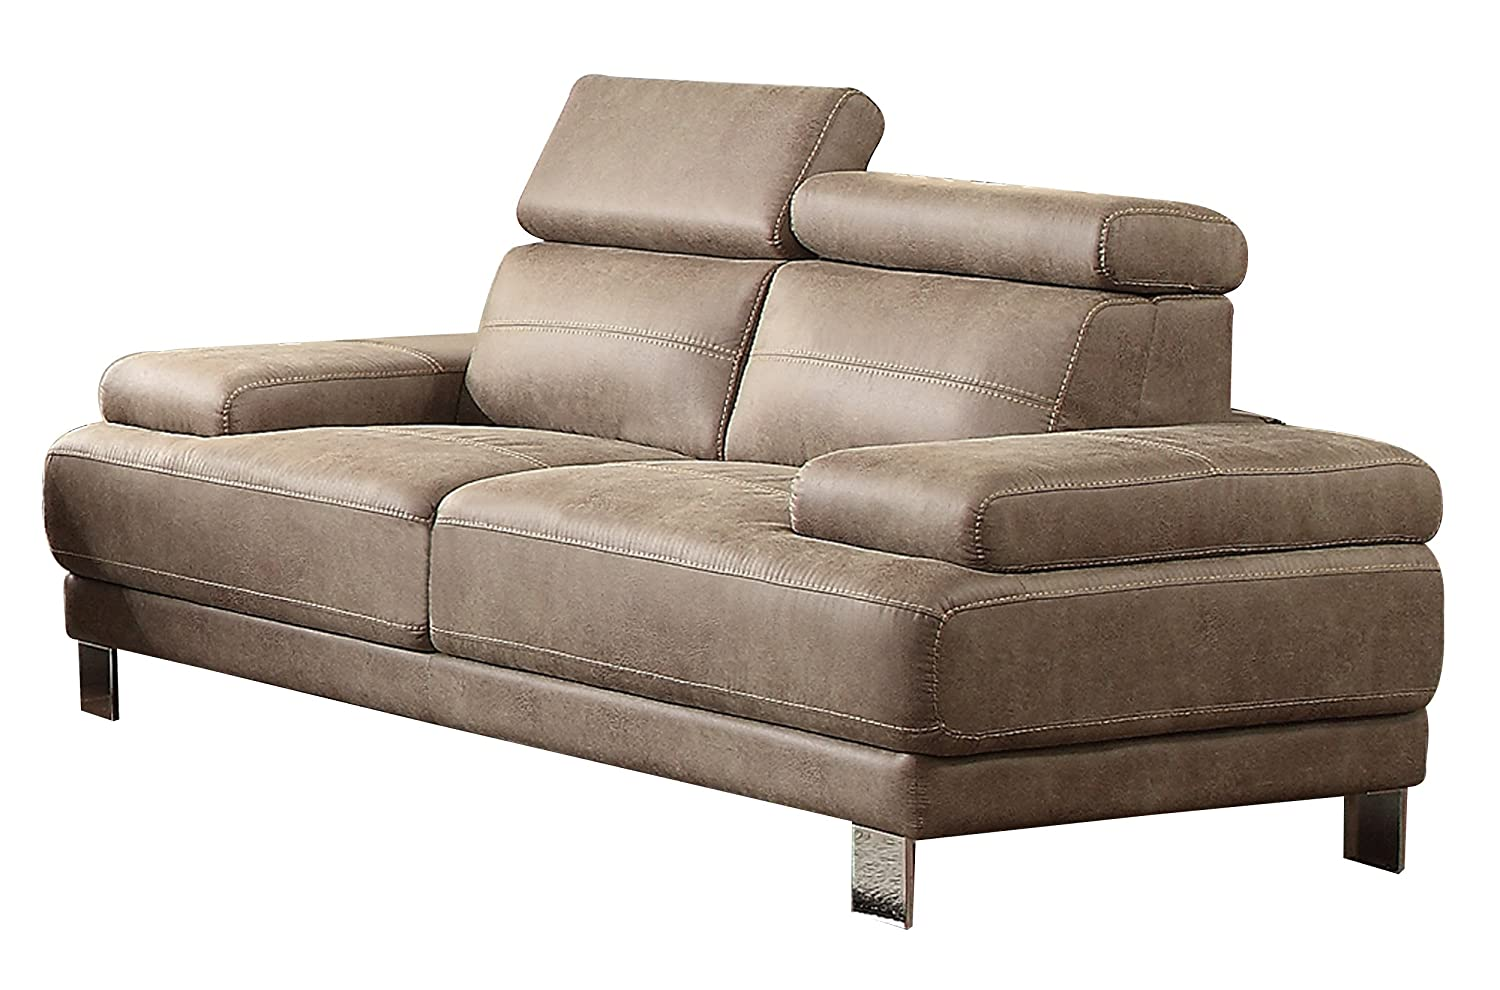 Homelegance 8434-2 Contemporary Structural Style with Adjustable Head Rest Love Seat